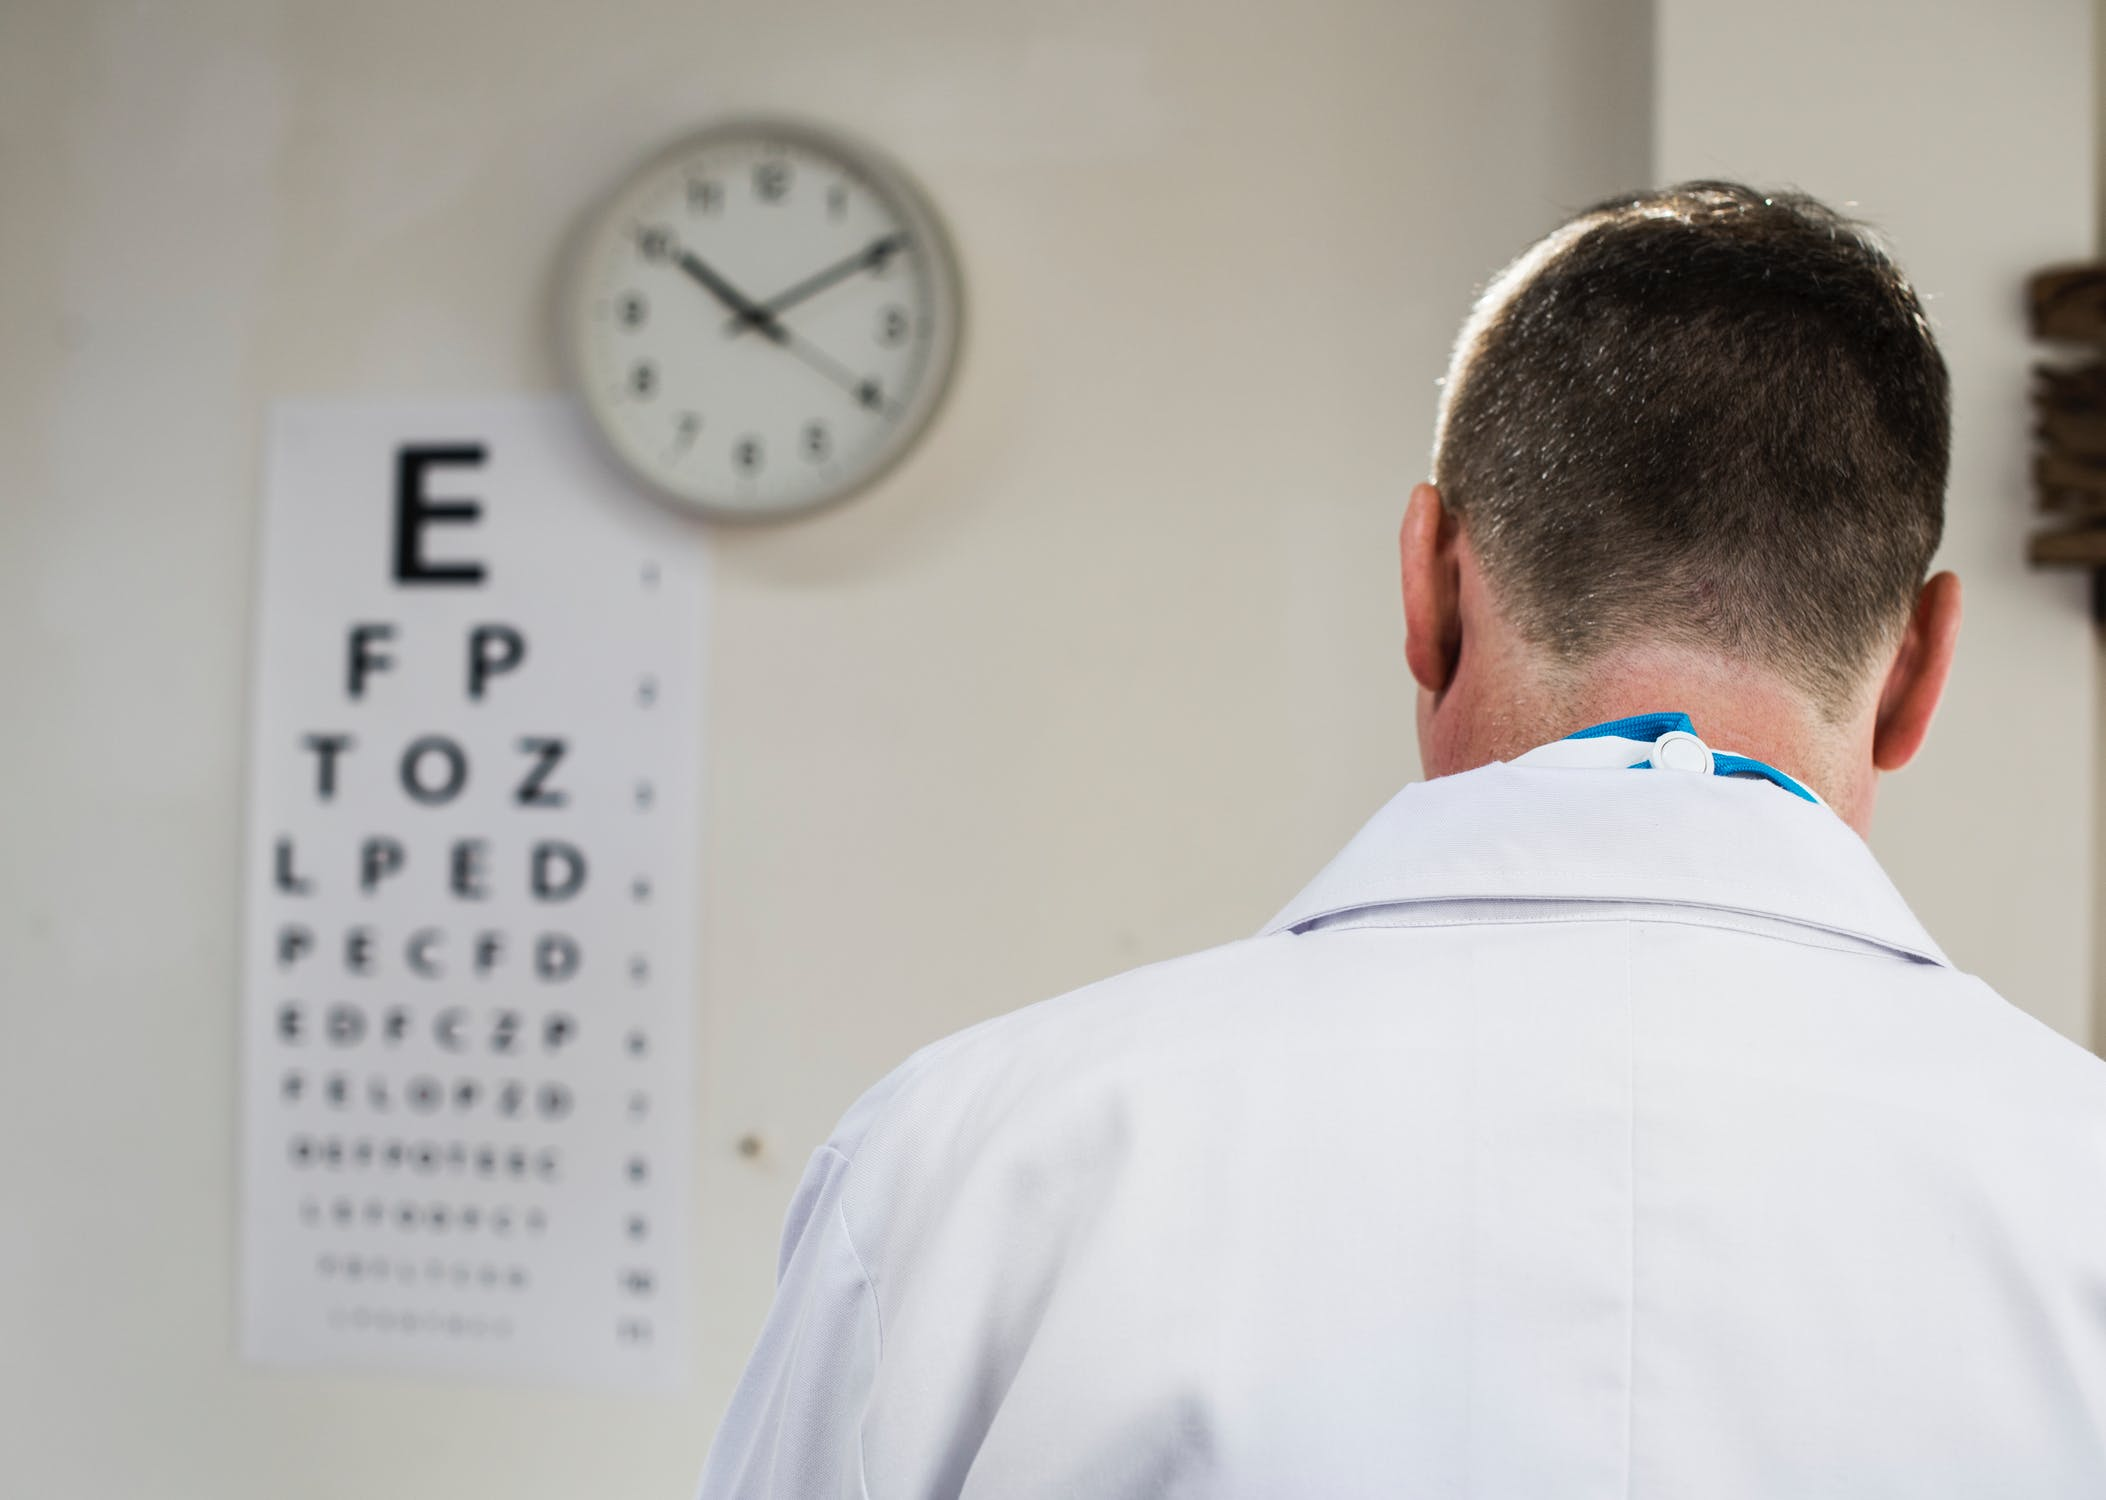 A doctor stands in the foreground with eye chart and clock on the wall in the background